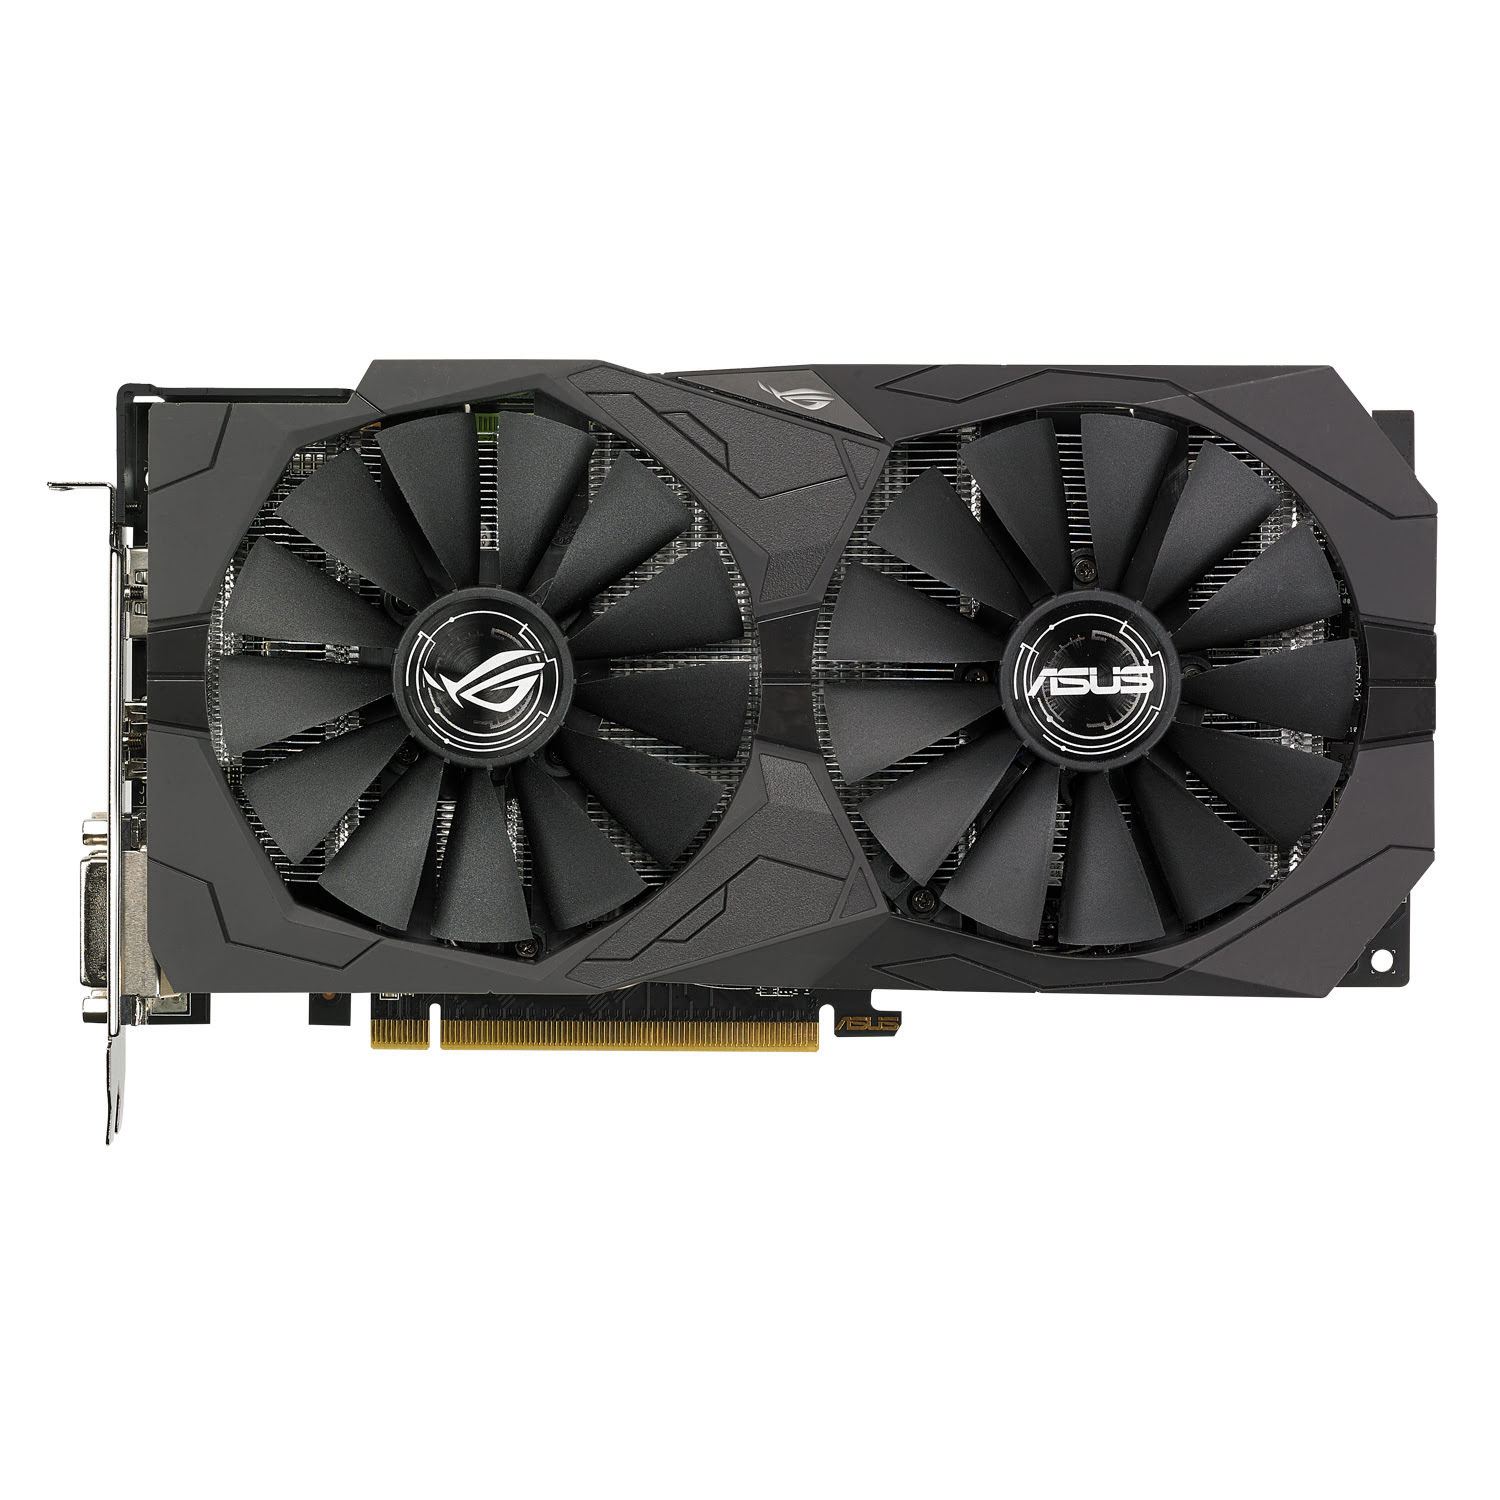 Asus STRIX-RX570-O4G GAMING 4Go - Carte graphique Asus - 4